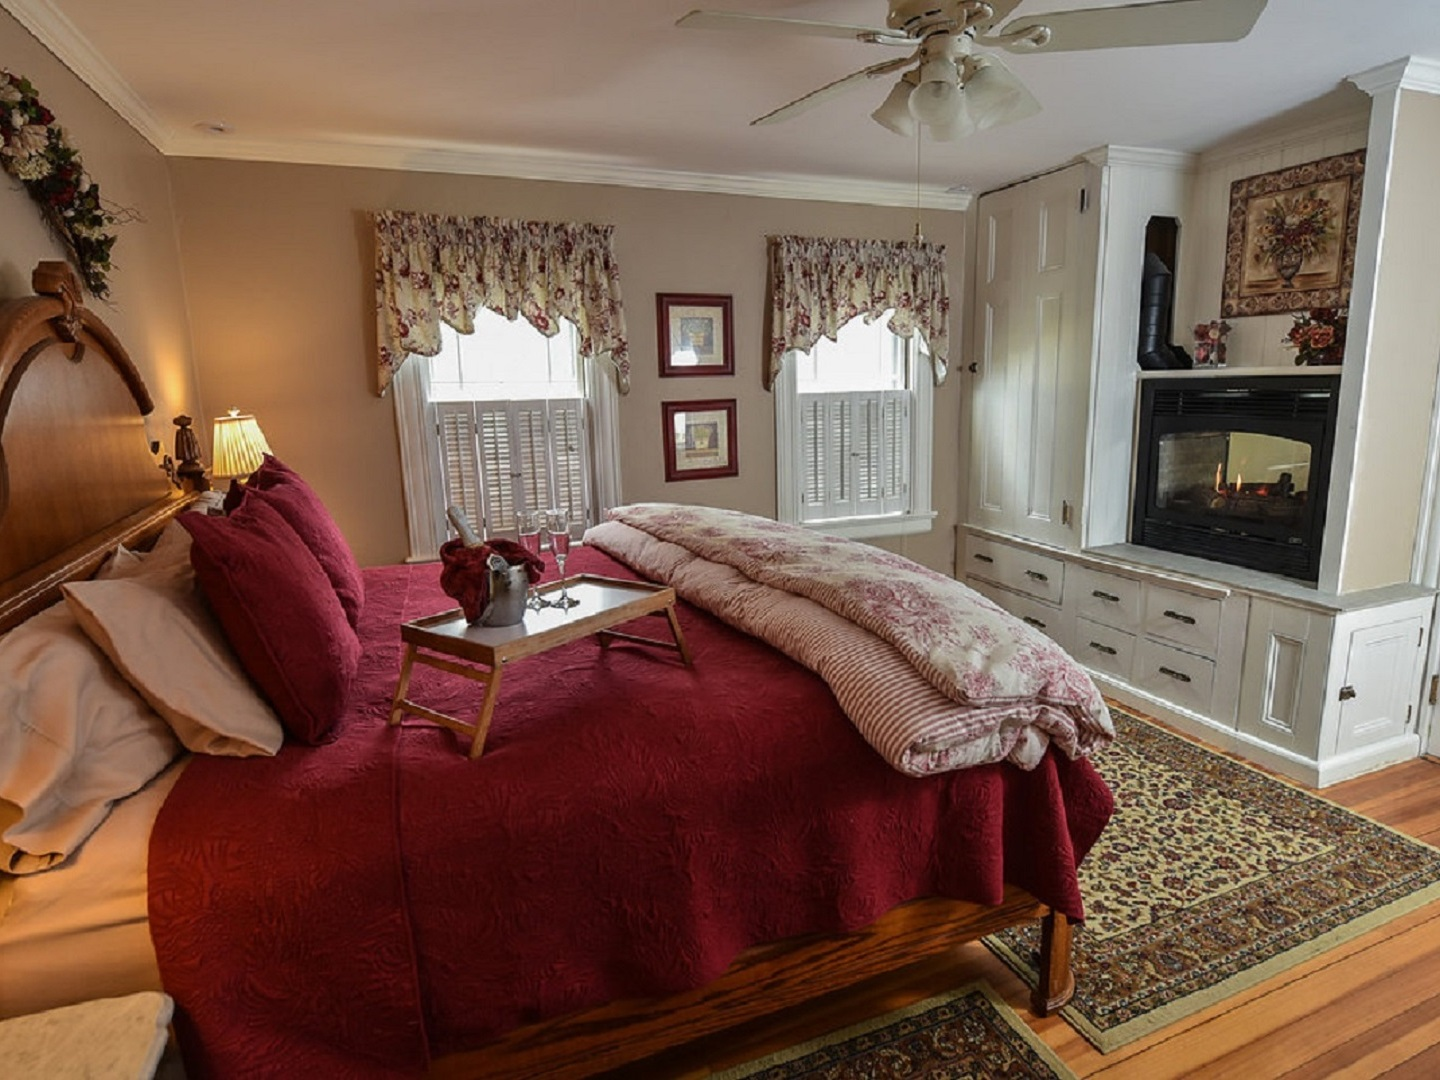 A living room filled with furniture and a fire place at The Saltair Inn Waterfront B&B.